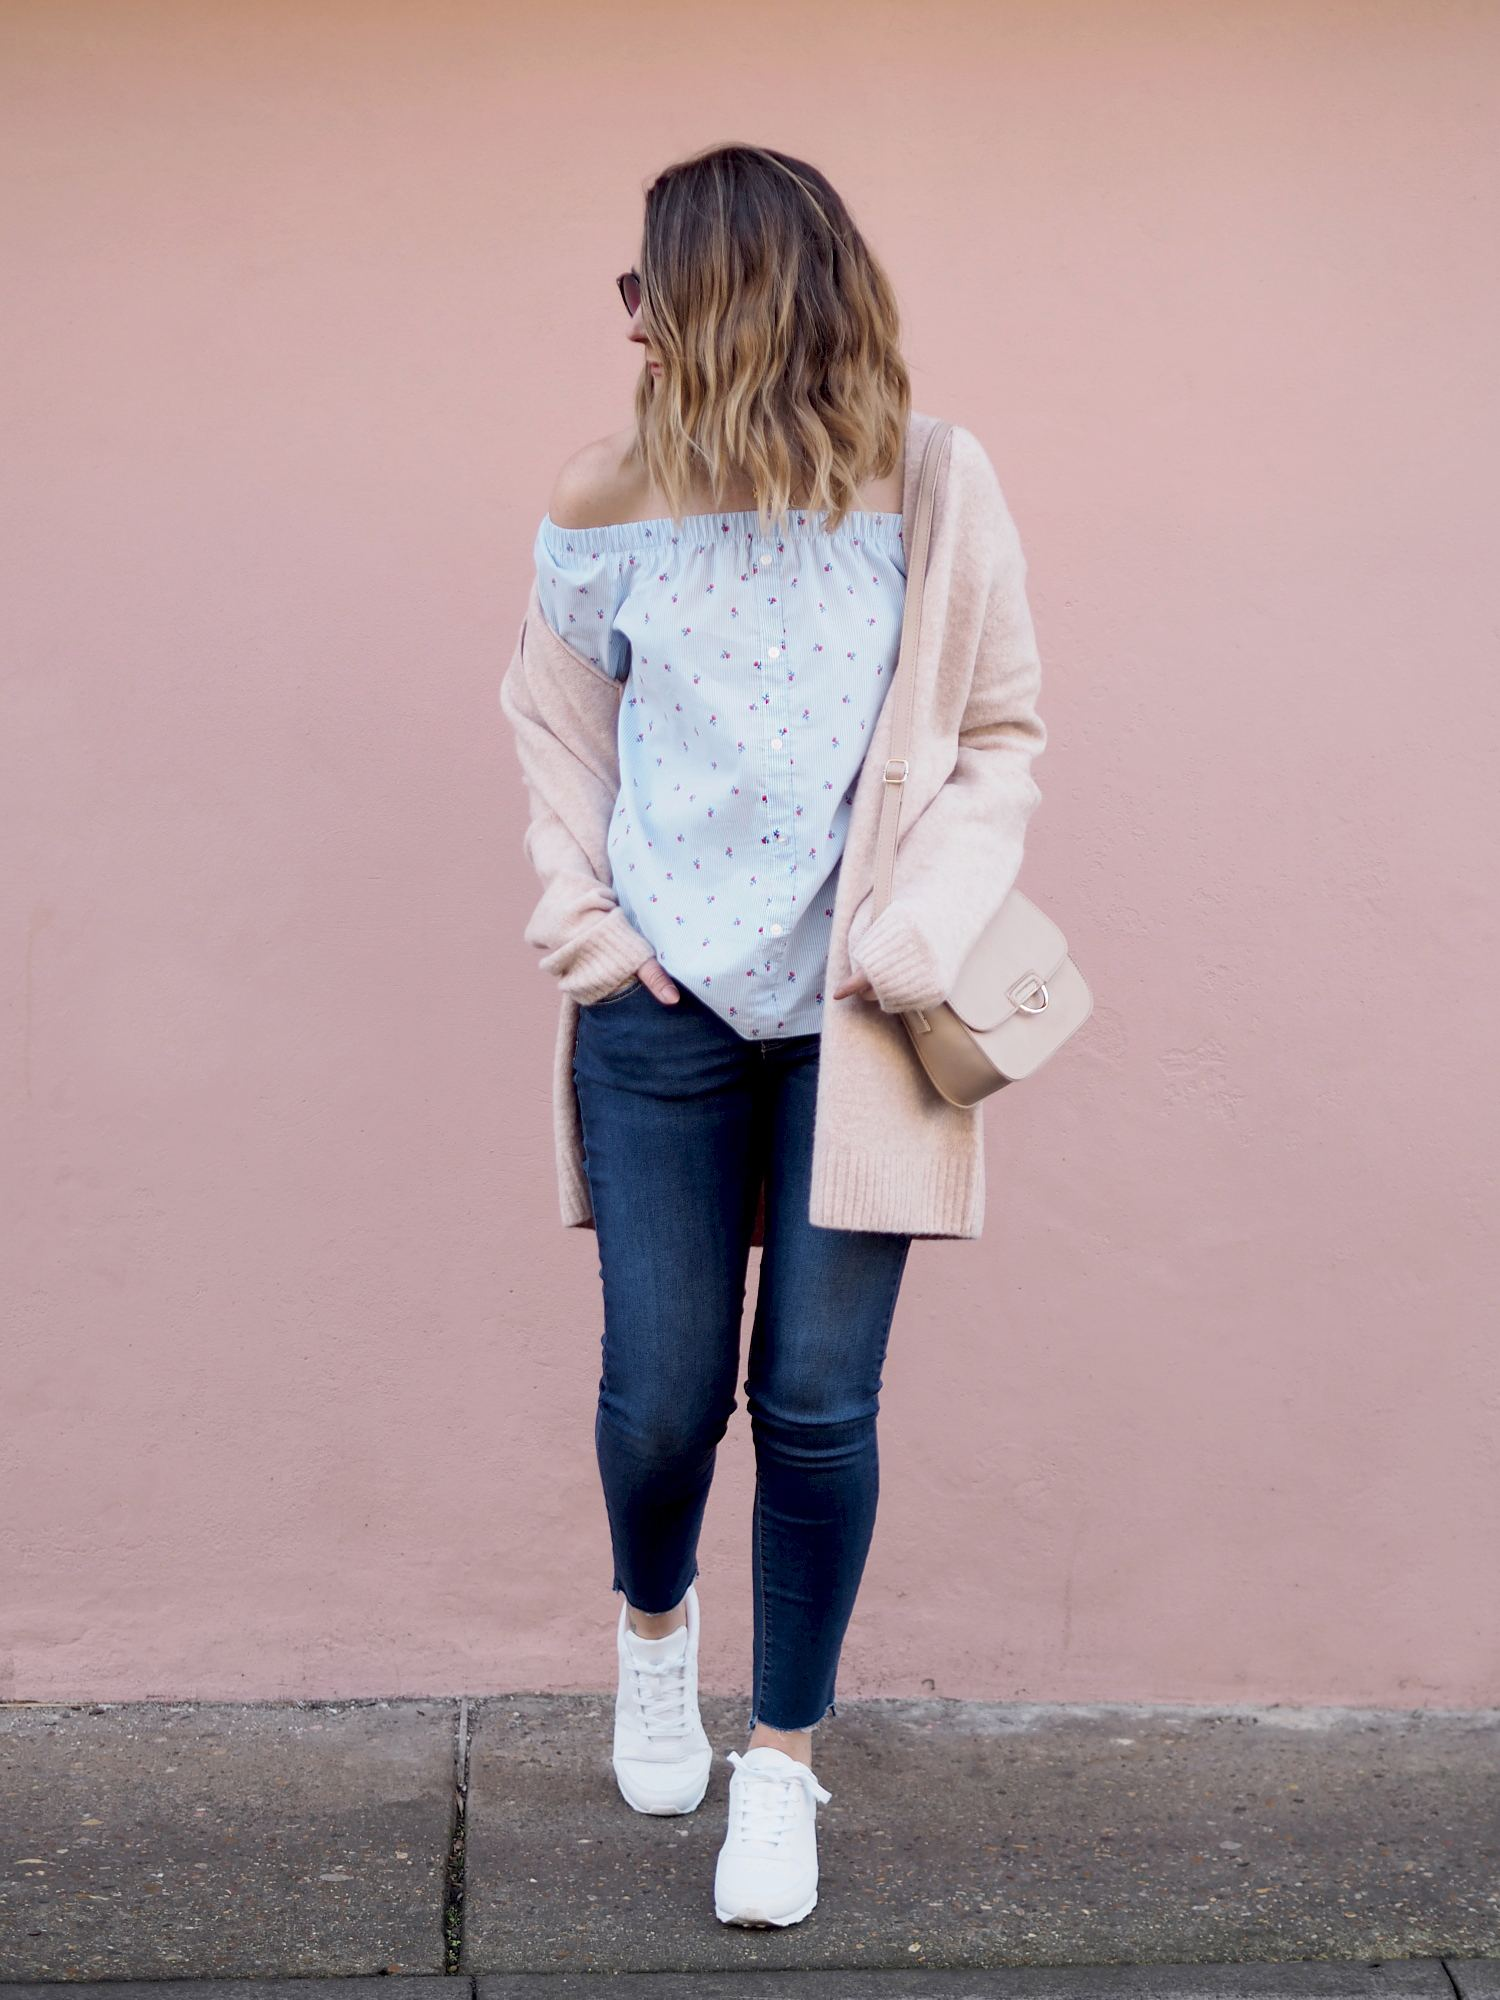 pink primark outfit against a pink wall